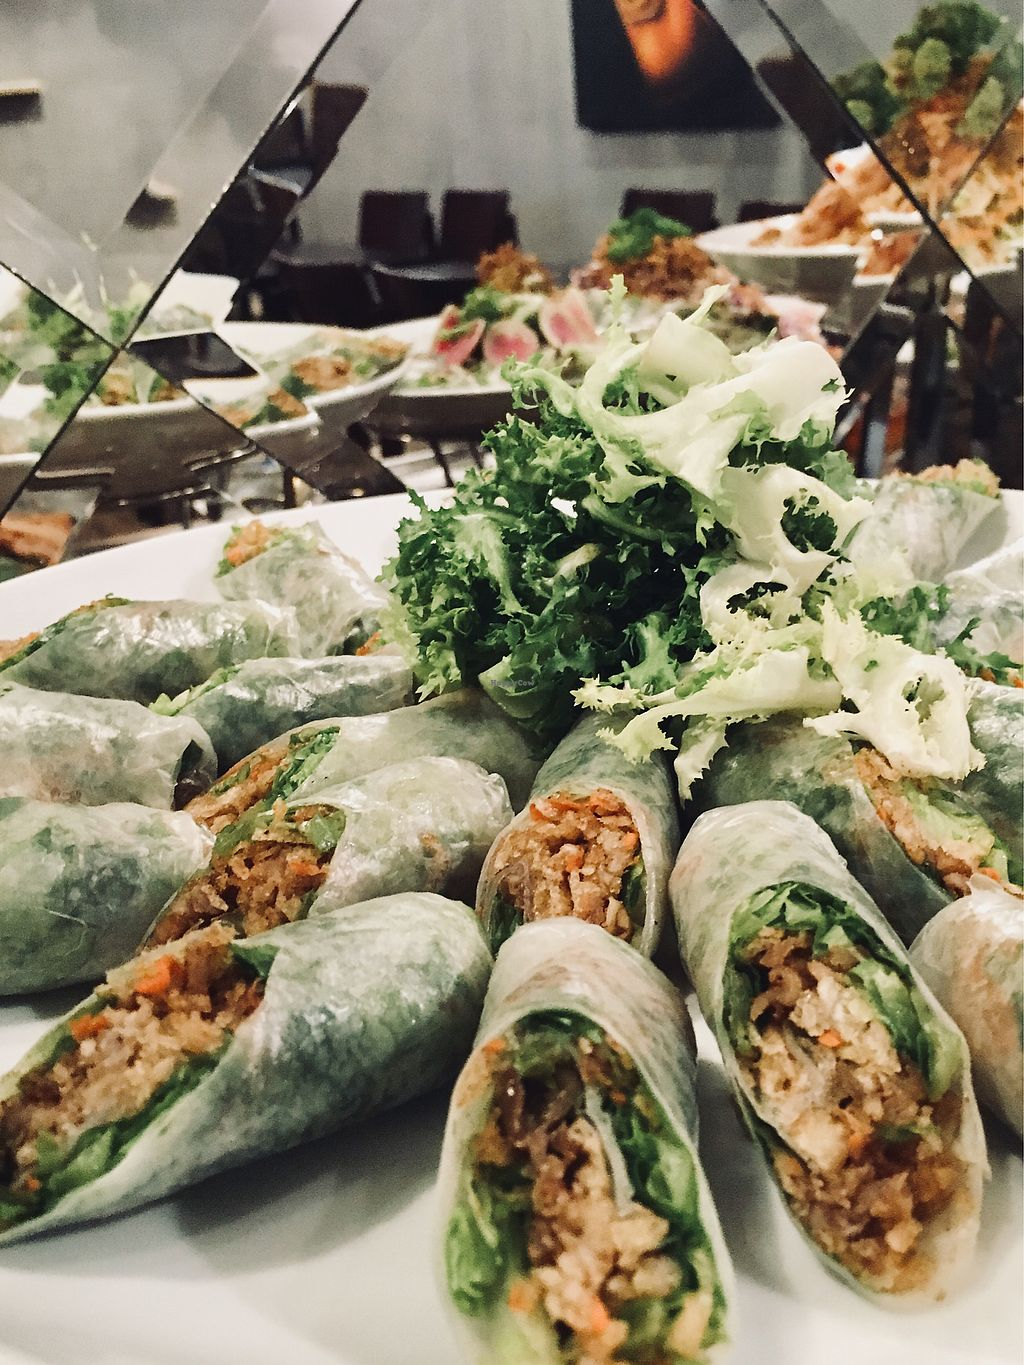 """Photo of Maha Vegan  by <a href=""""/members/profile/BastianSteinbach"""">BastianSteinbach</a> <br/>Springrolls included in vegan buffet  <br/> March 18, 2018  - <a href='/contact/abuse/image/111634/372208'>Report</a>"""